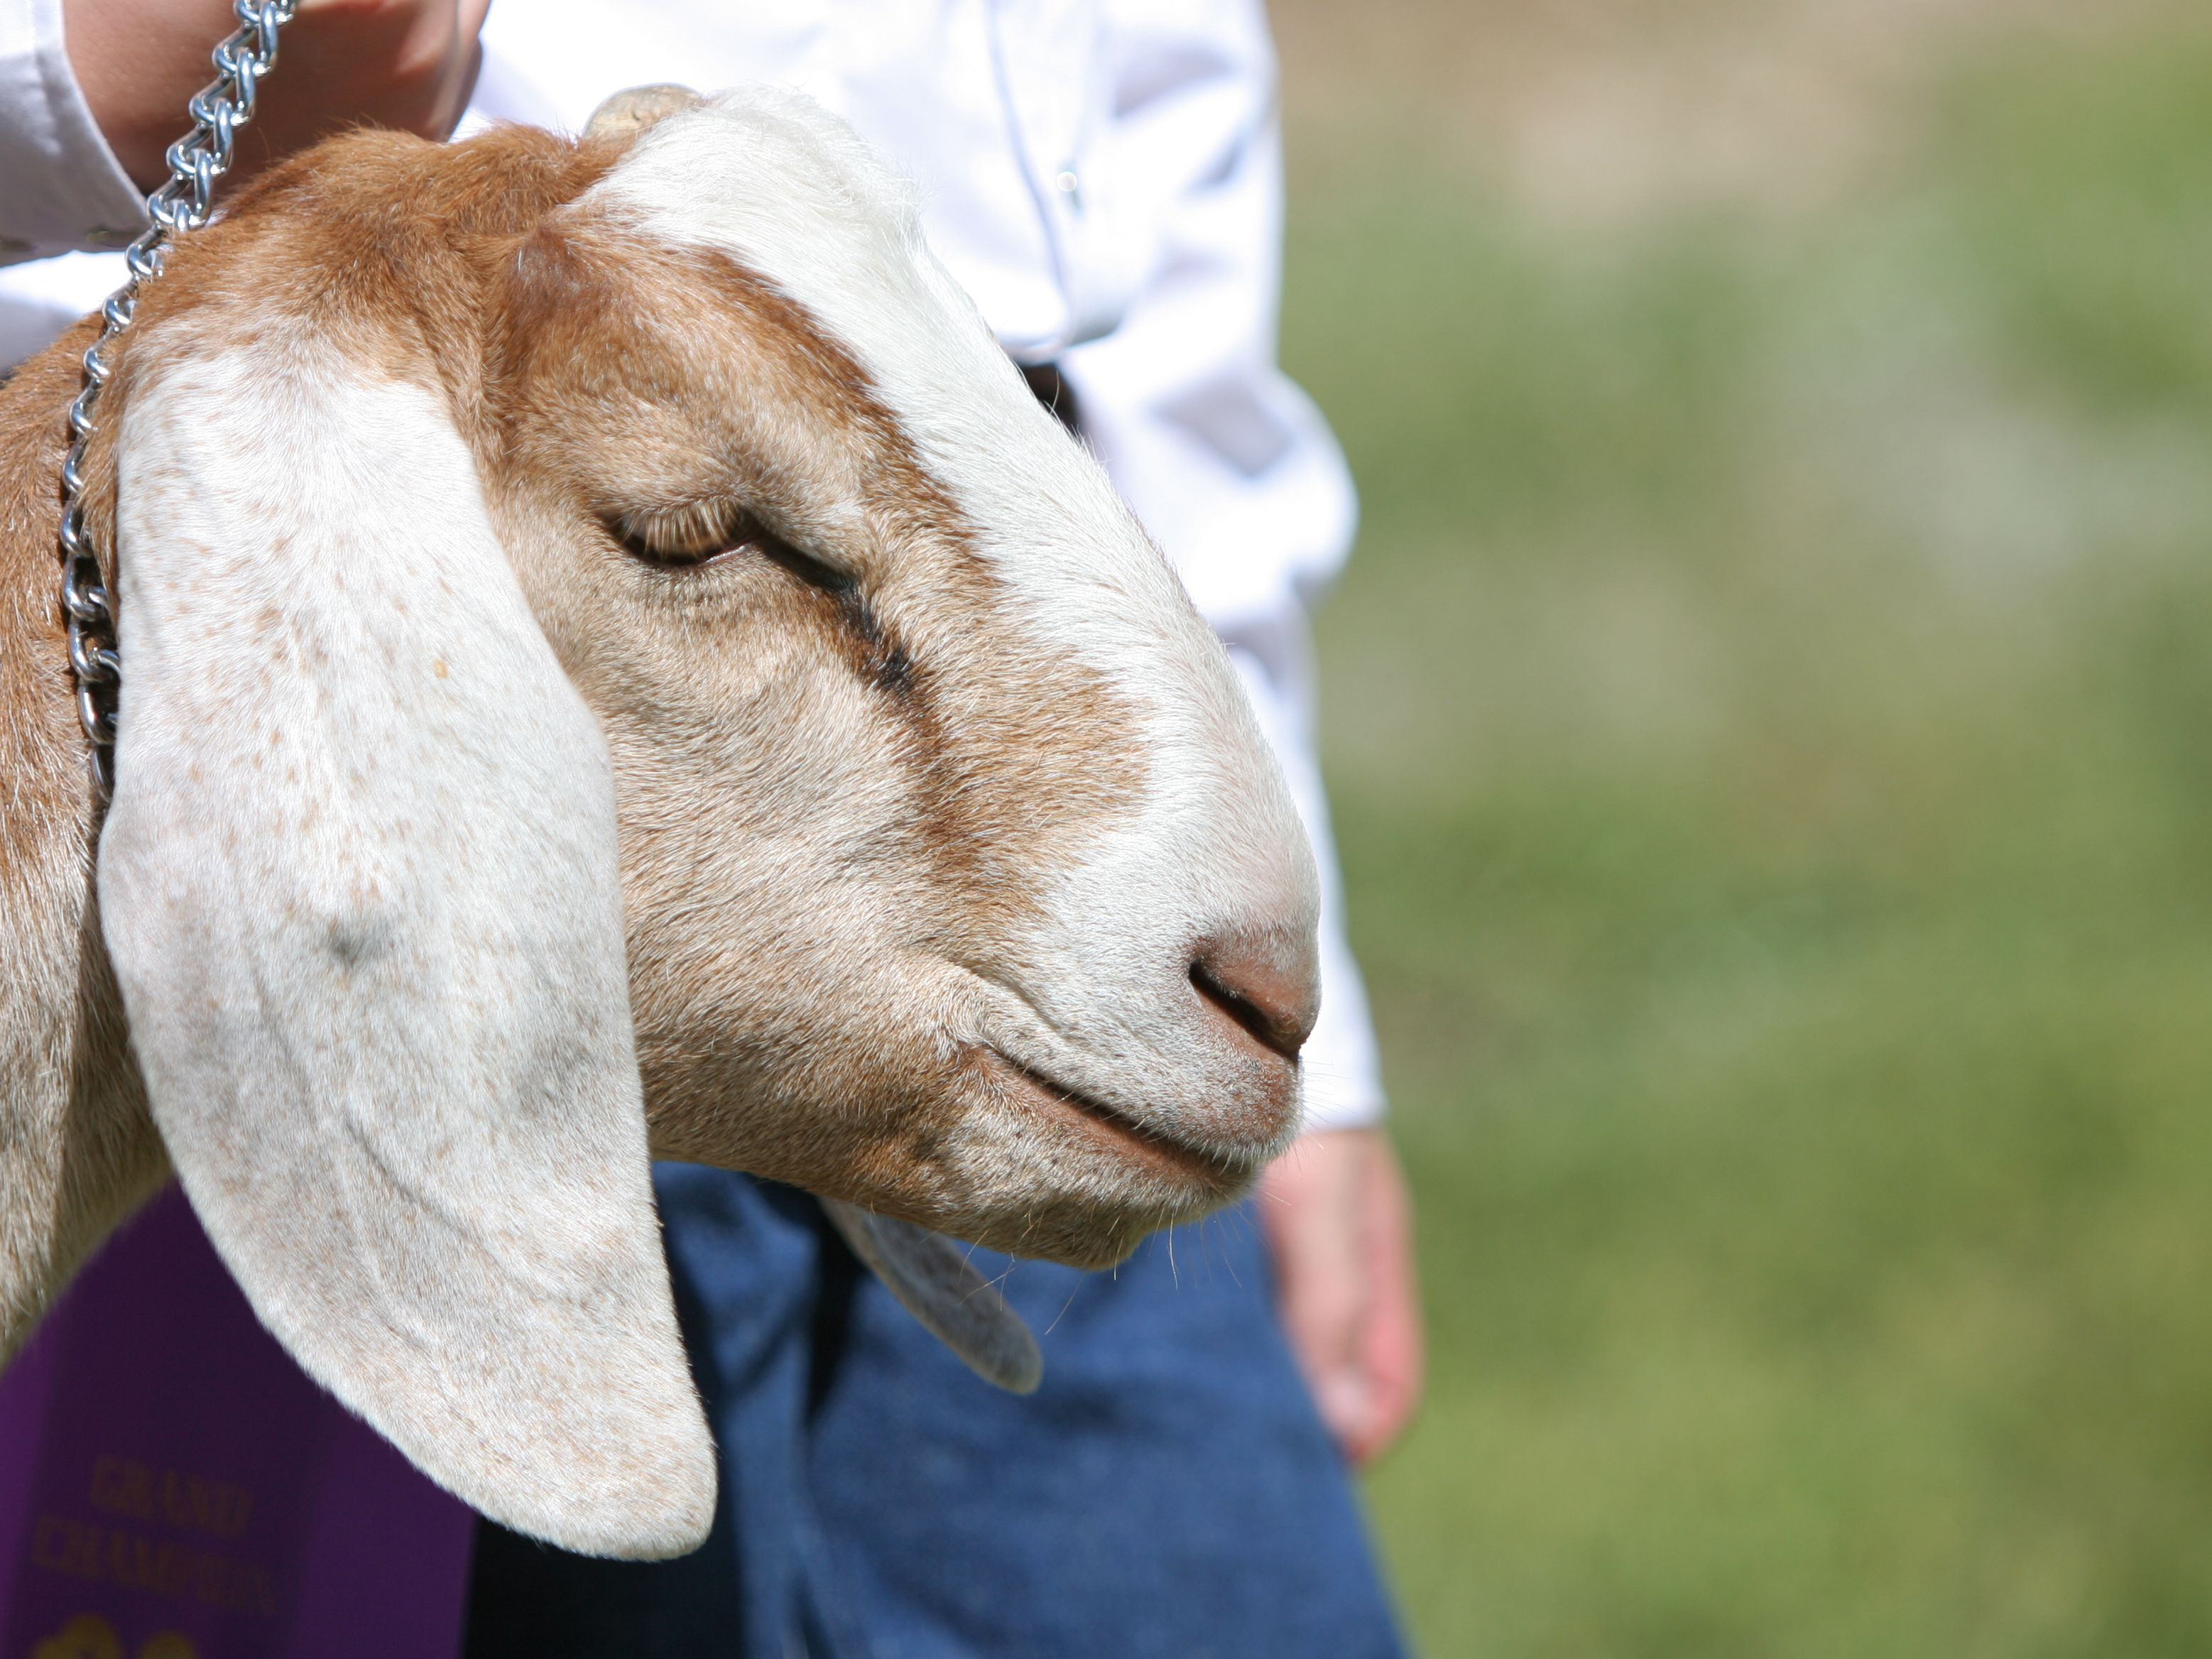 How To Buy Goats For Your Small Farm